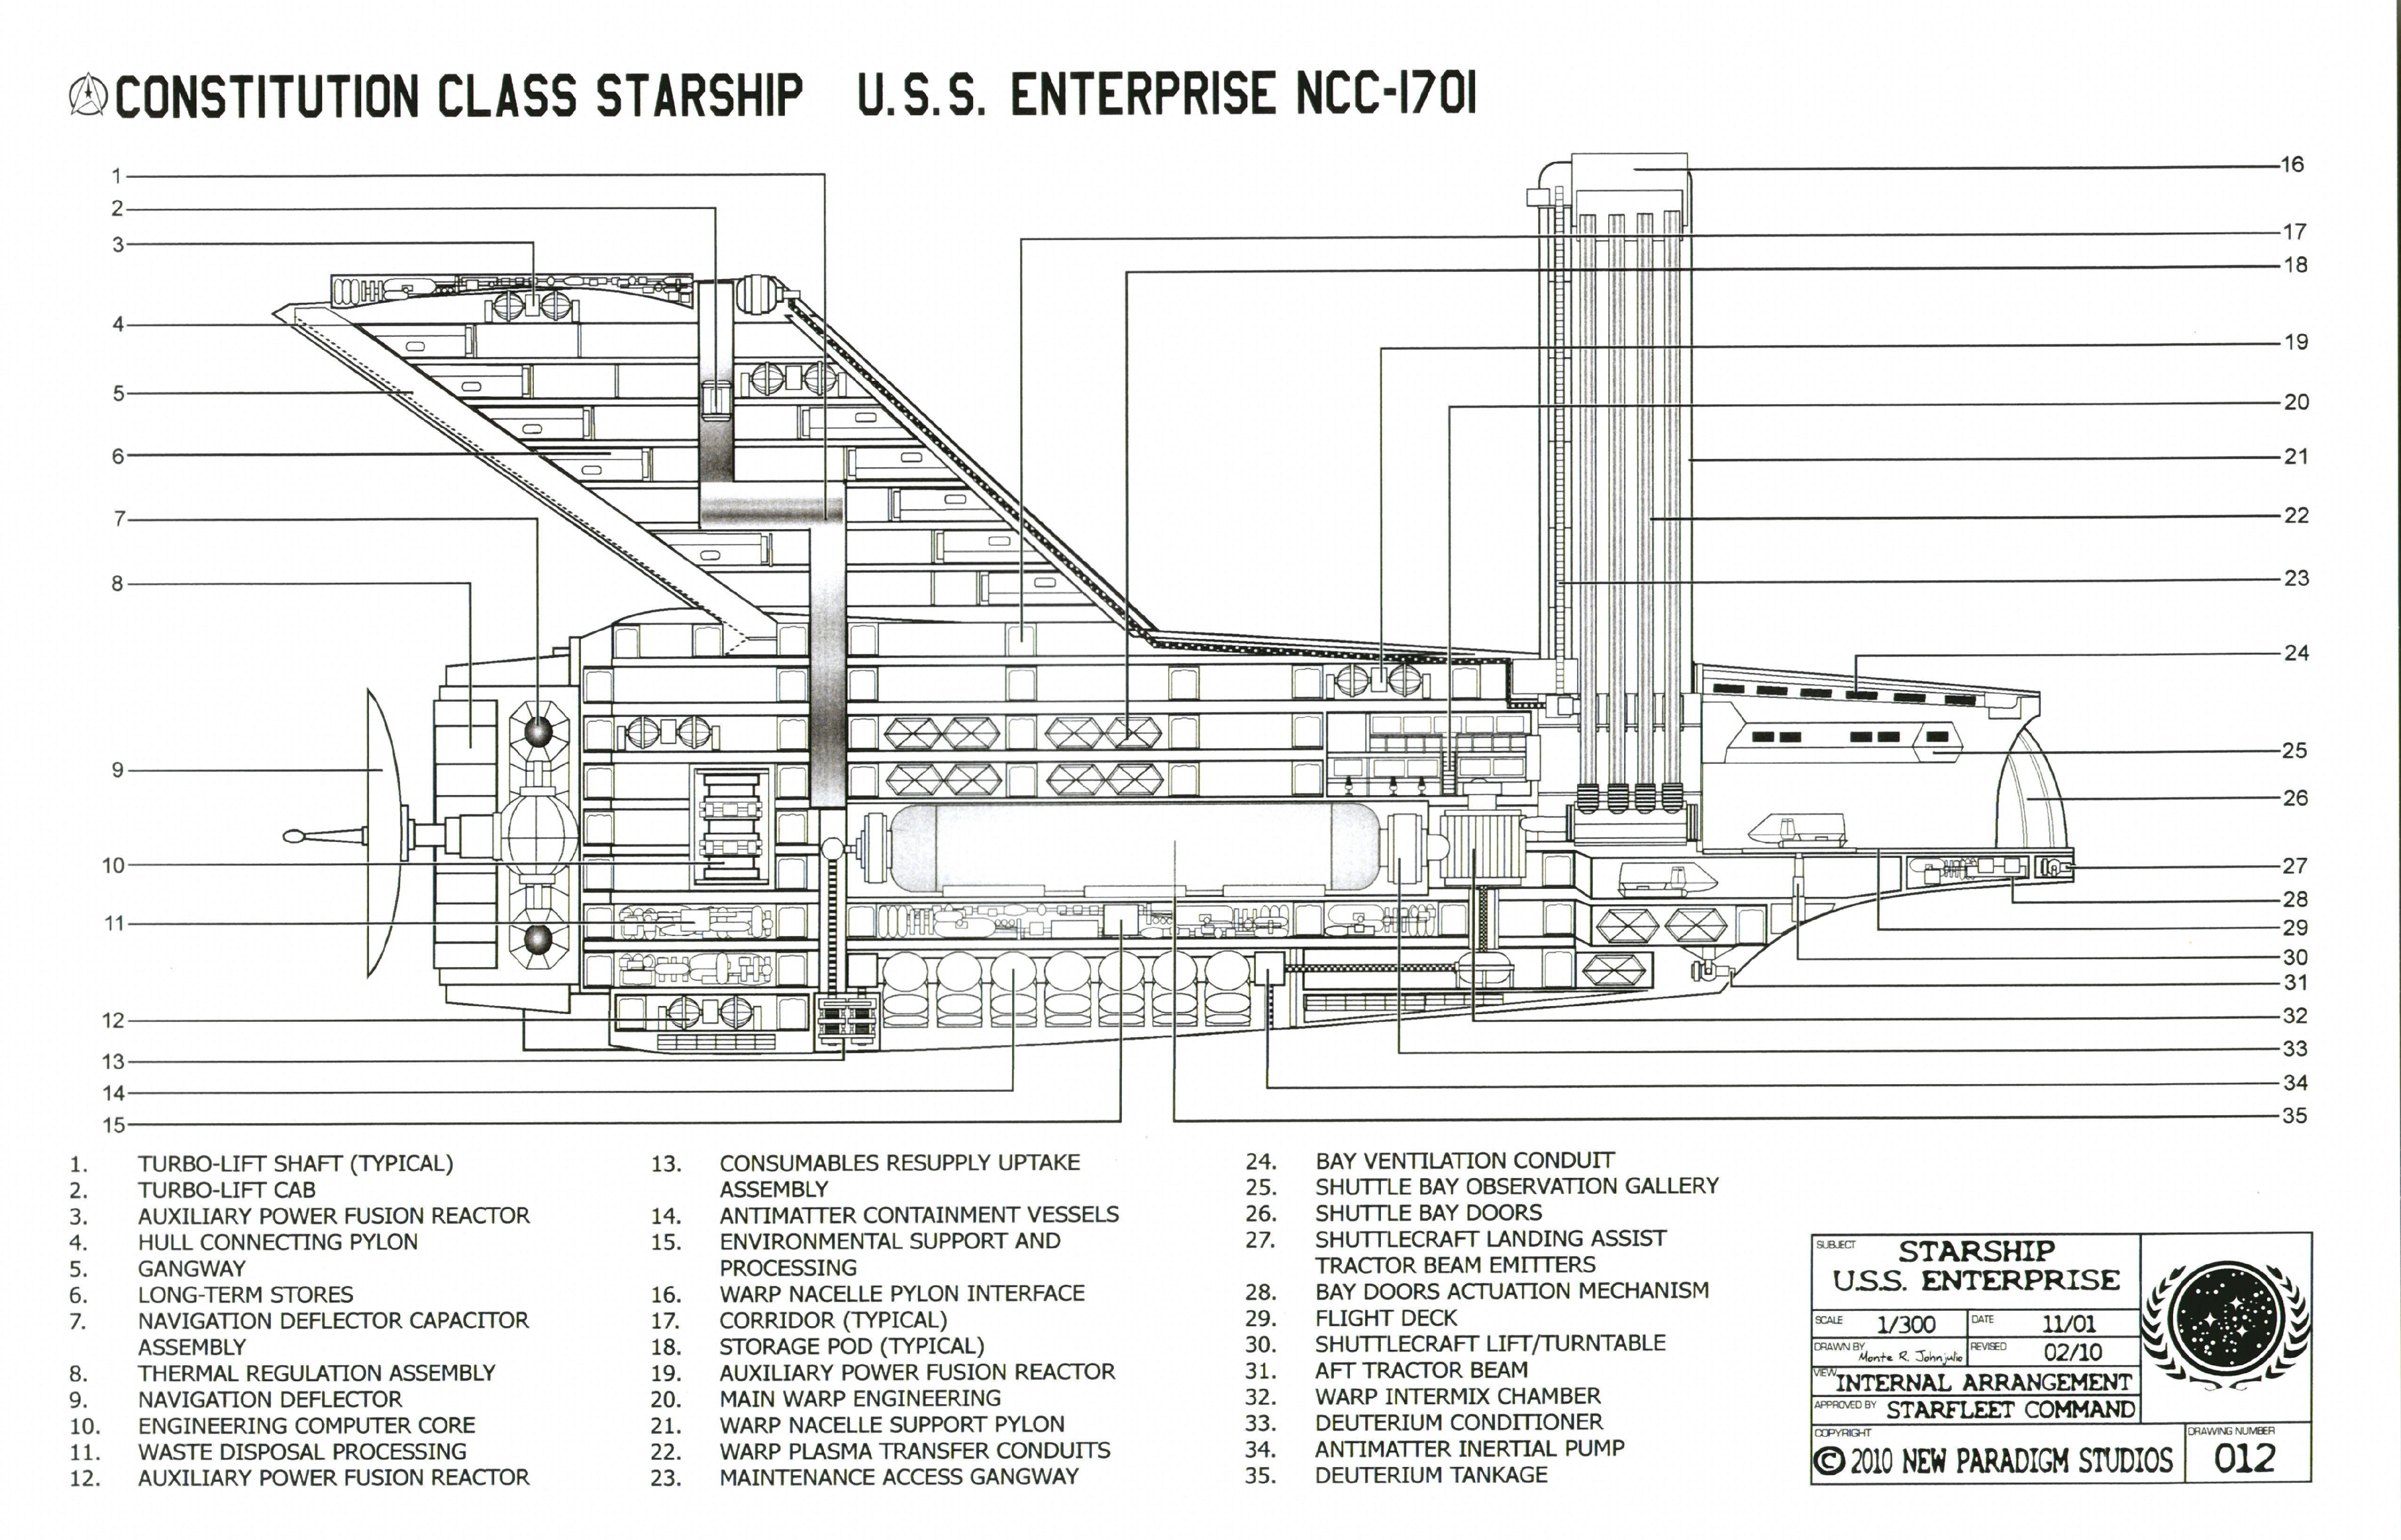 Star Trek Blueprints Constitution Class Starship